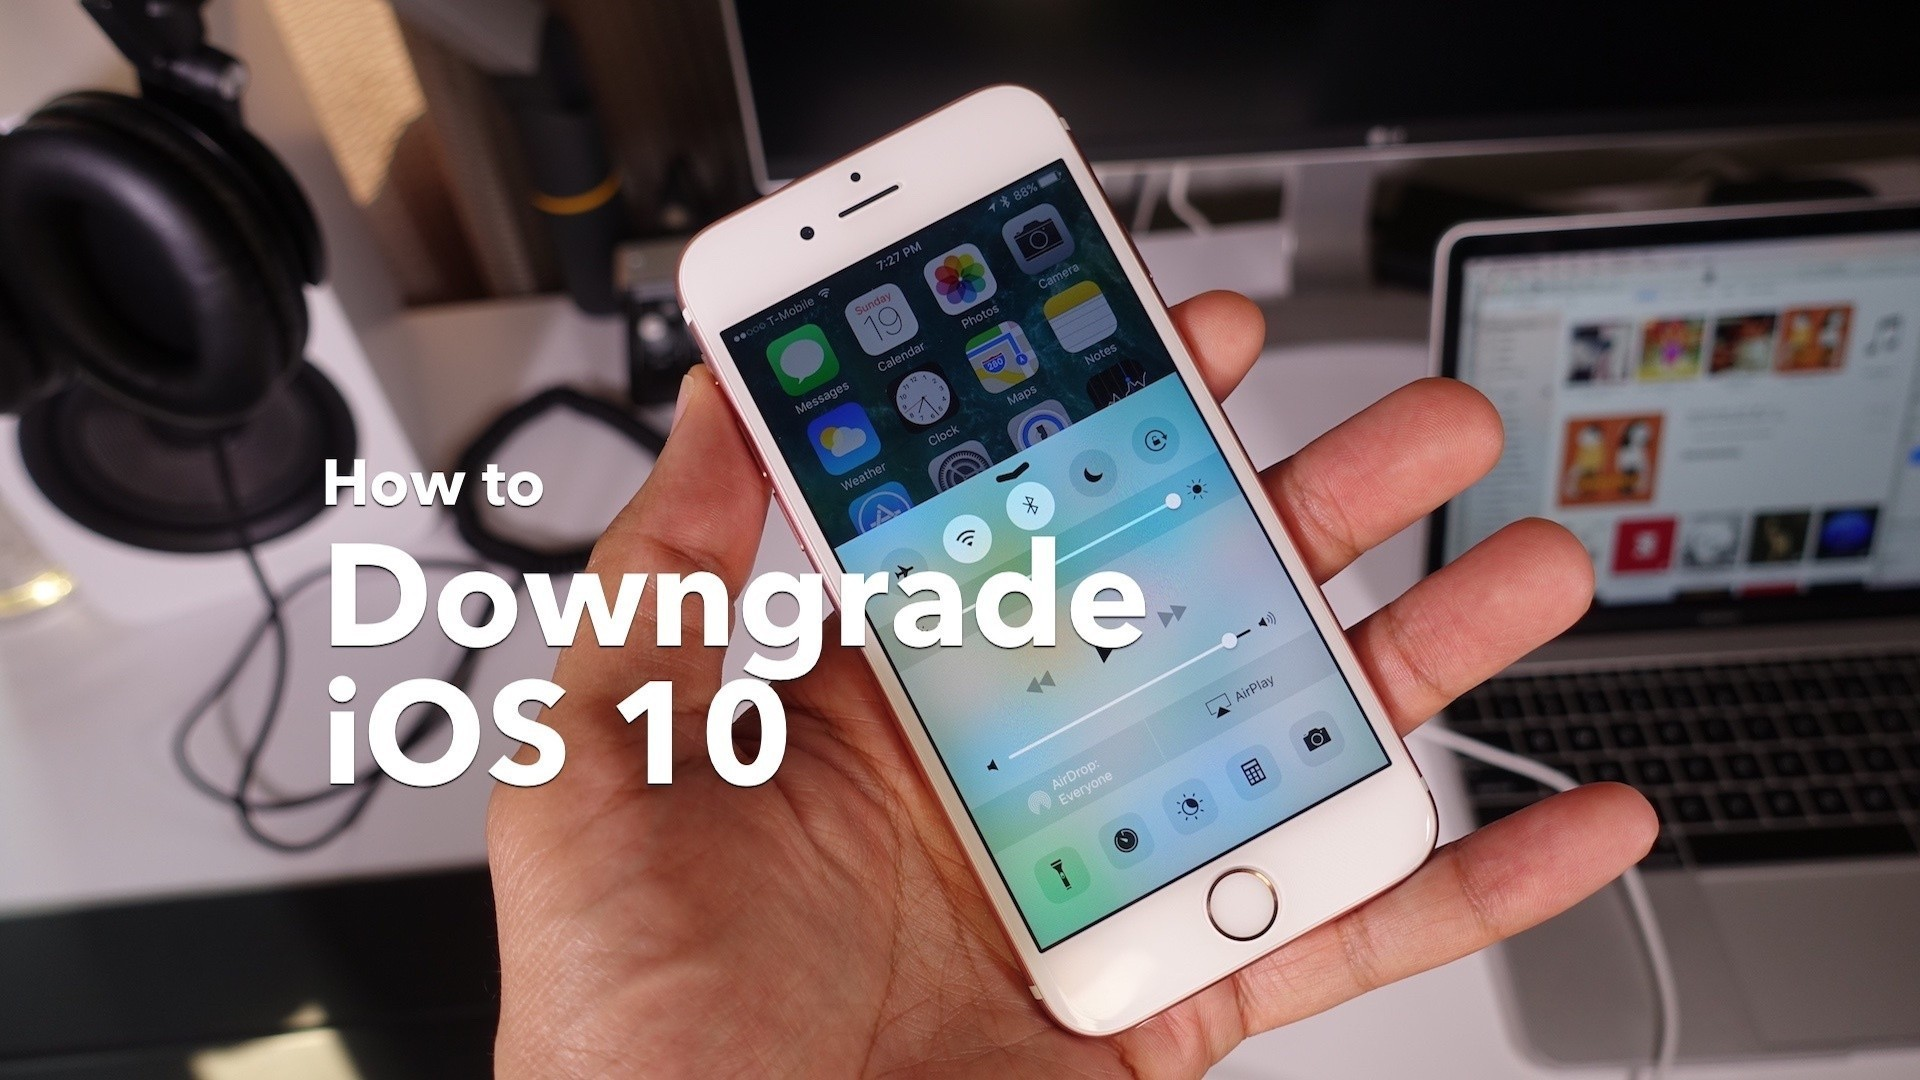 Considering an iOS 10 downgrade? Here are a few things to keep in mind